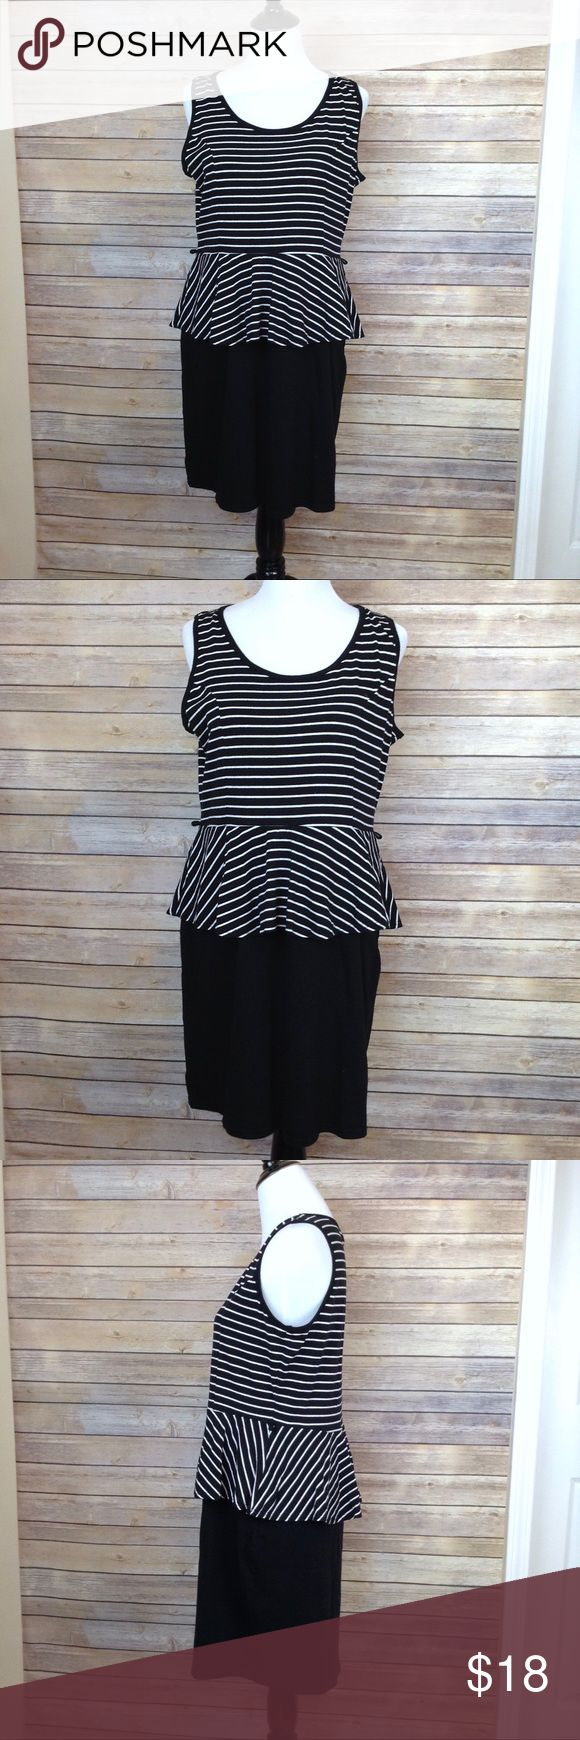 """Derek Heart black & white peplum dress This sleeveless dress is preloved, only flaw is that it has belt loops but no belt, which can easily be snipped off. The fabric is cottony soft.  My mannequin measures 34/28/36 APPROX FLAT MEASUREMENTS  36"""" ↕️ 21"""" ↔️ armpits  CB13 #plussize #peplum #sleeveless Derek Heart Dresses Midi"""